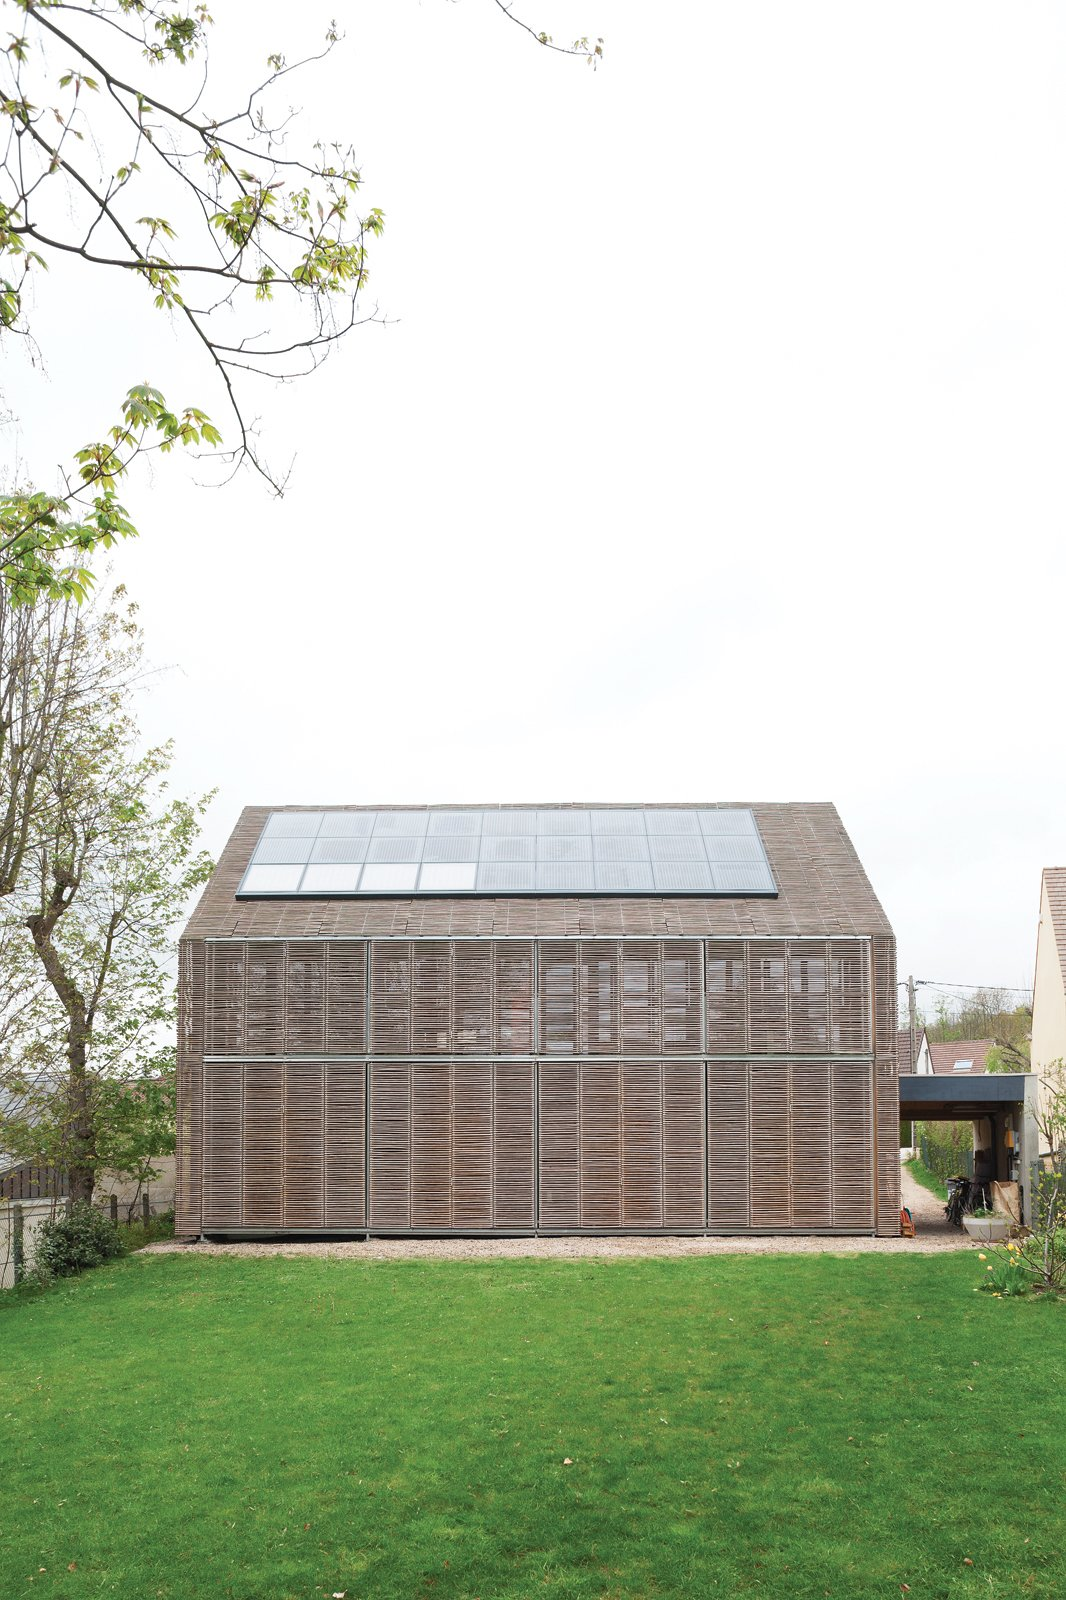 Passive ProgressiveStunning bamboo covers this house in Bessancourt, France, on all four sides, its lattice making up a striking set of adjustable screens that allow the residents to modify the facade to suit the weather. Photo by: Nicholas Calcott  Photo 1 of 8 in Passive Progressive